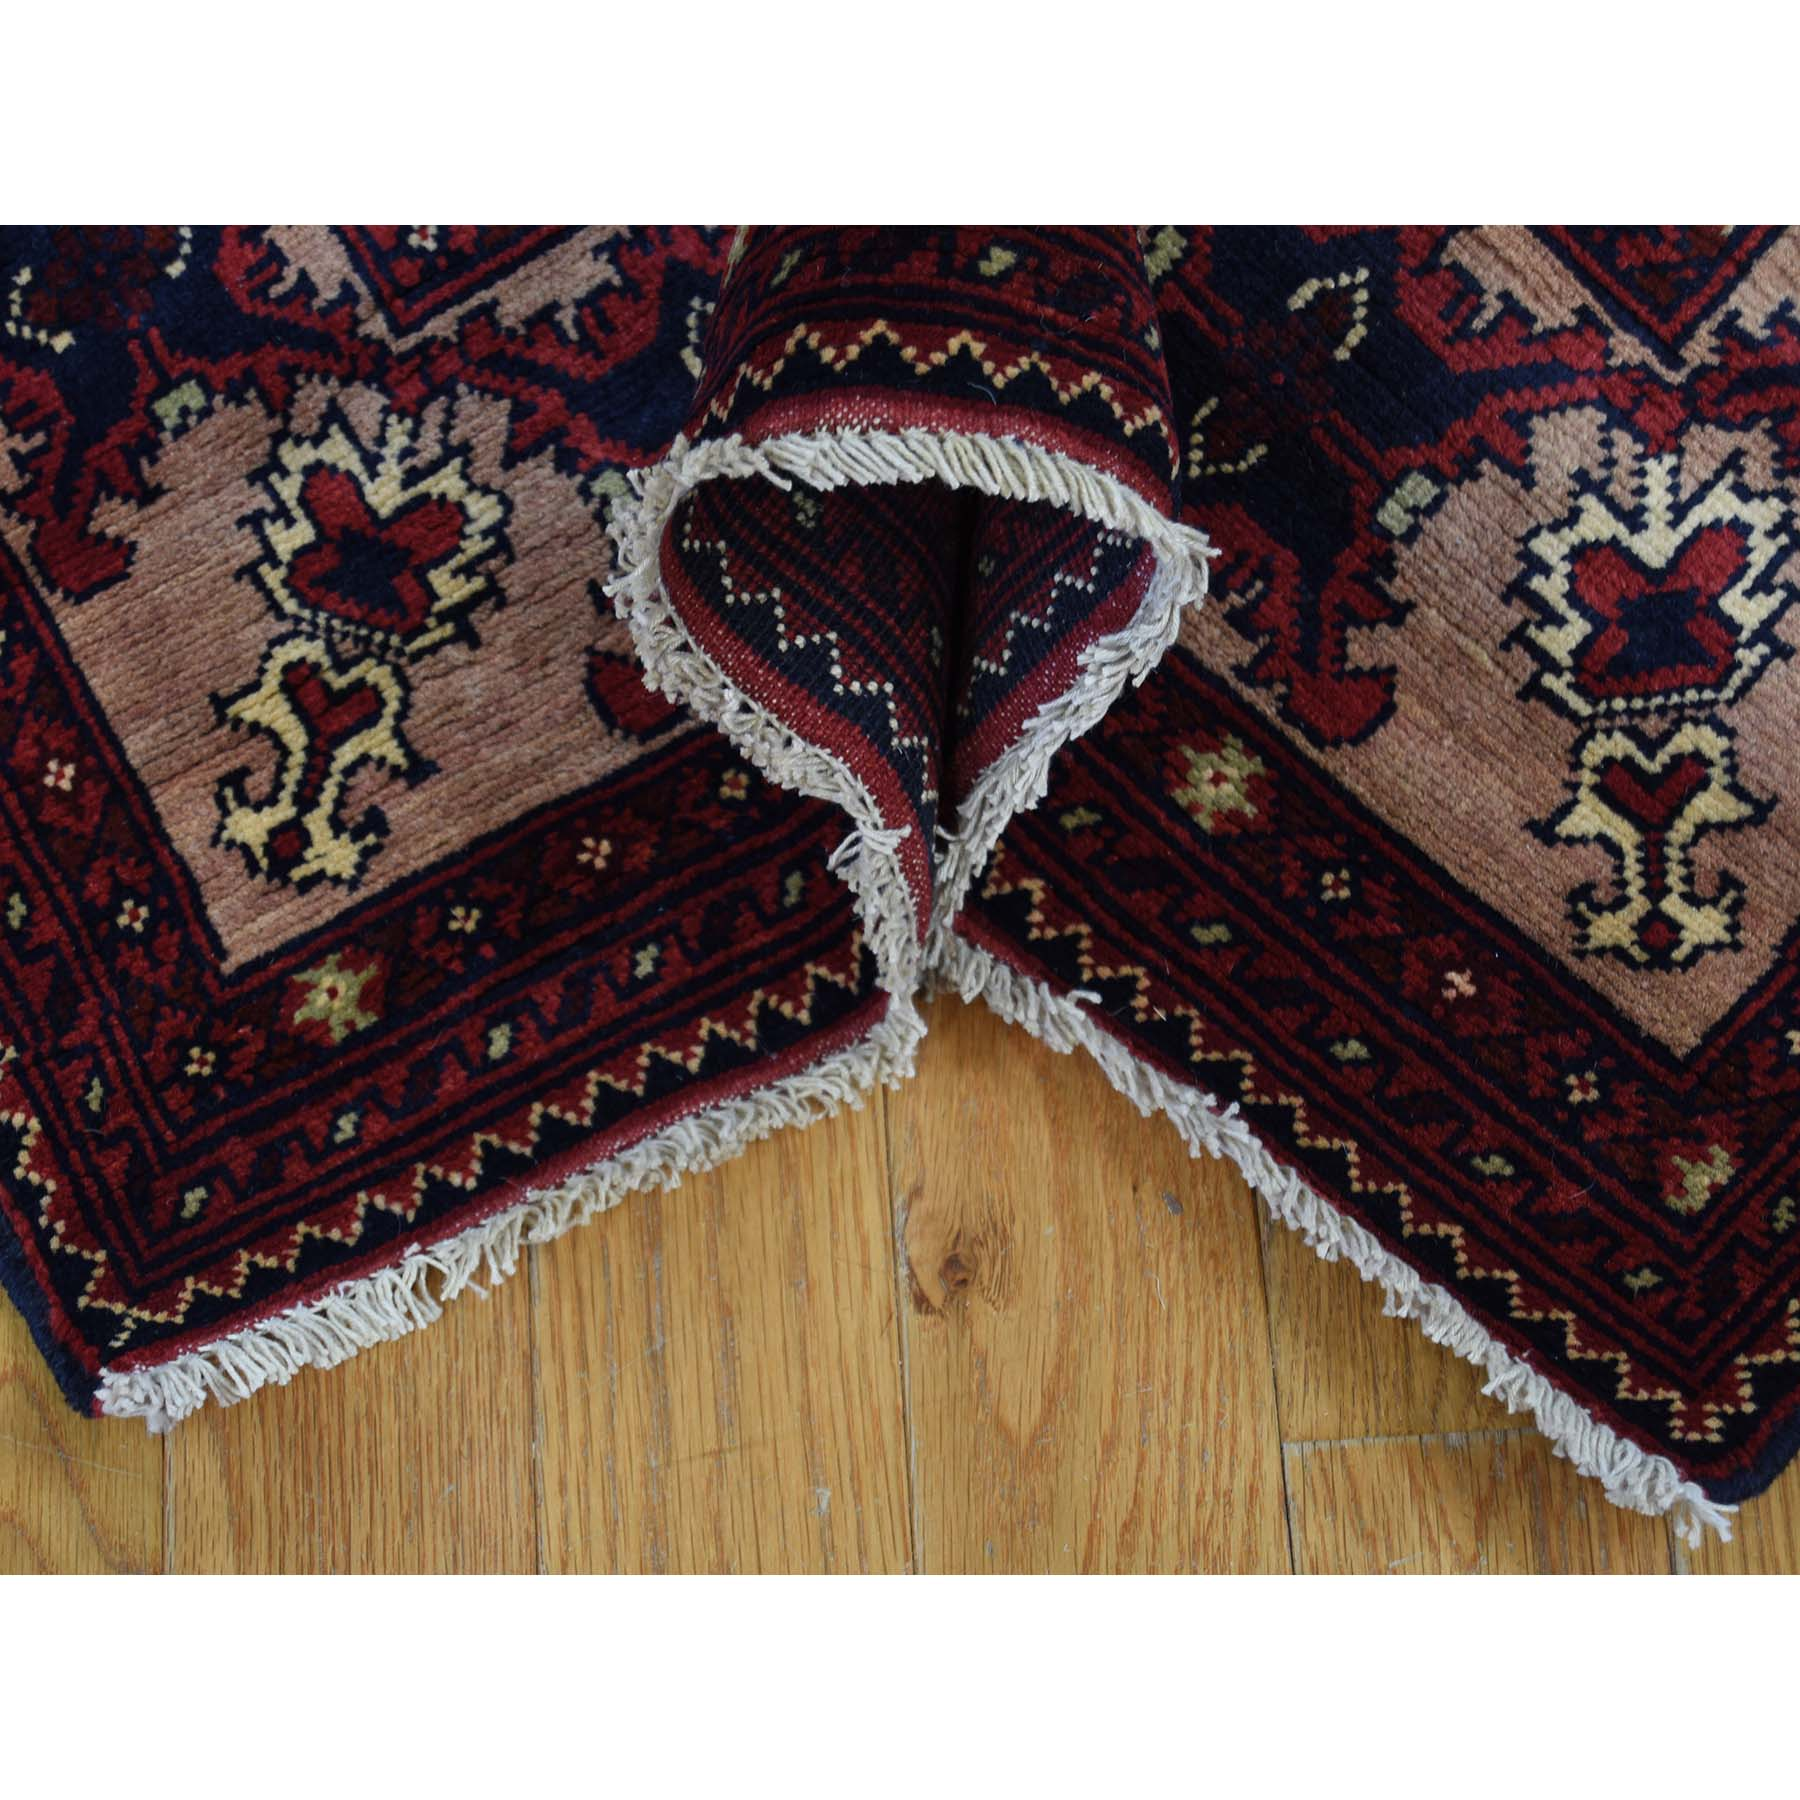 3-x19- 100 Percent Wool Hand Knotted Afghan XL Runner Oriental Rug